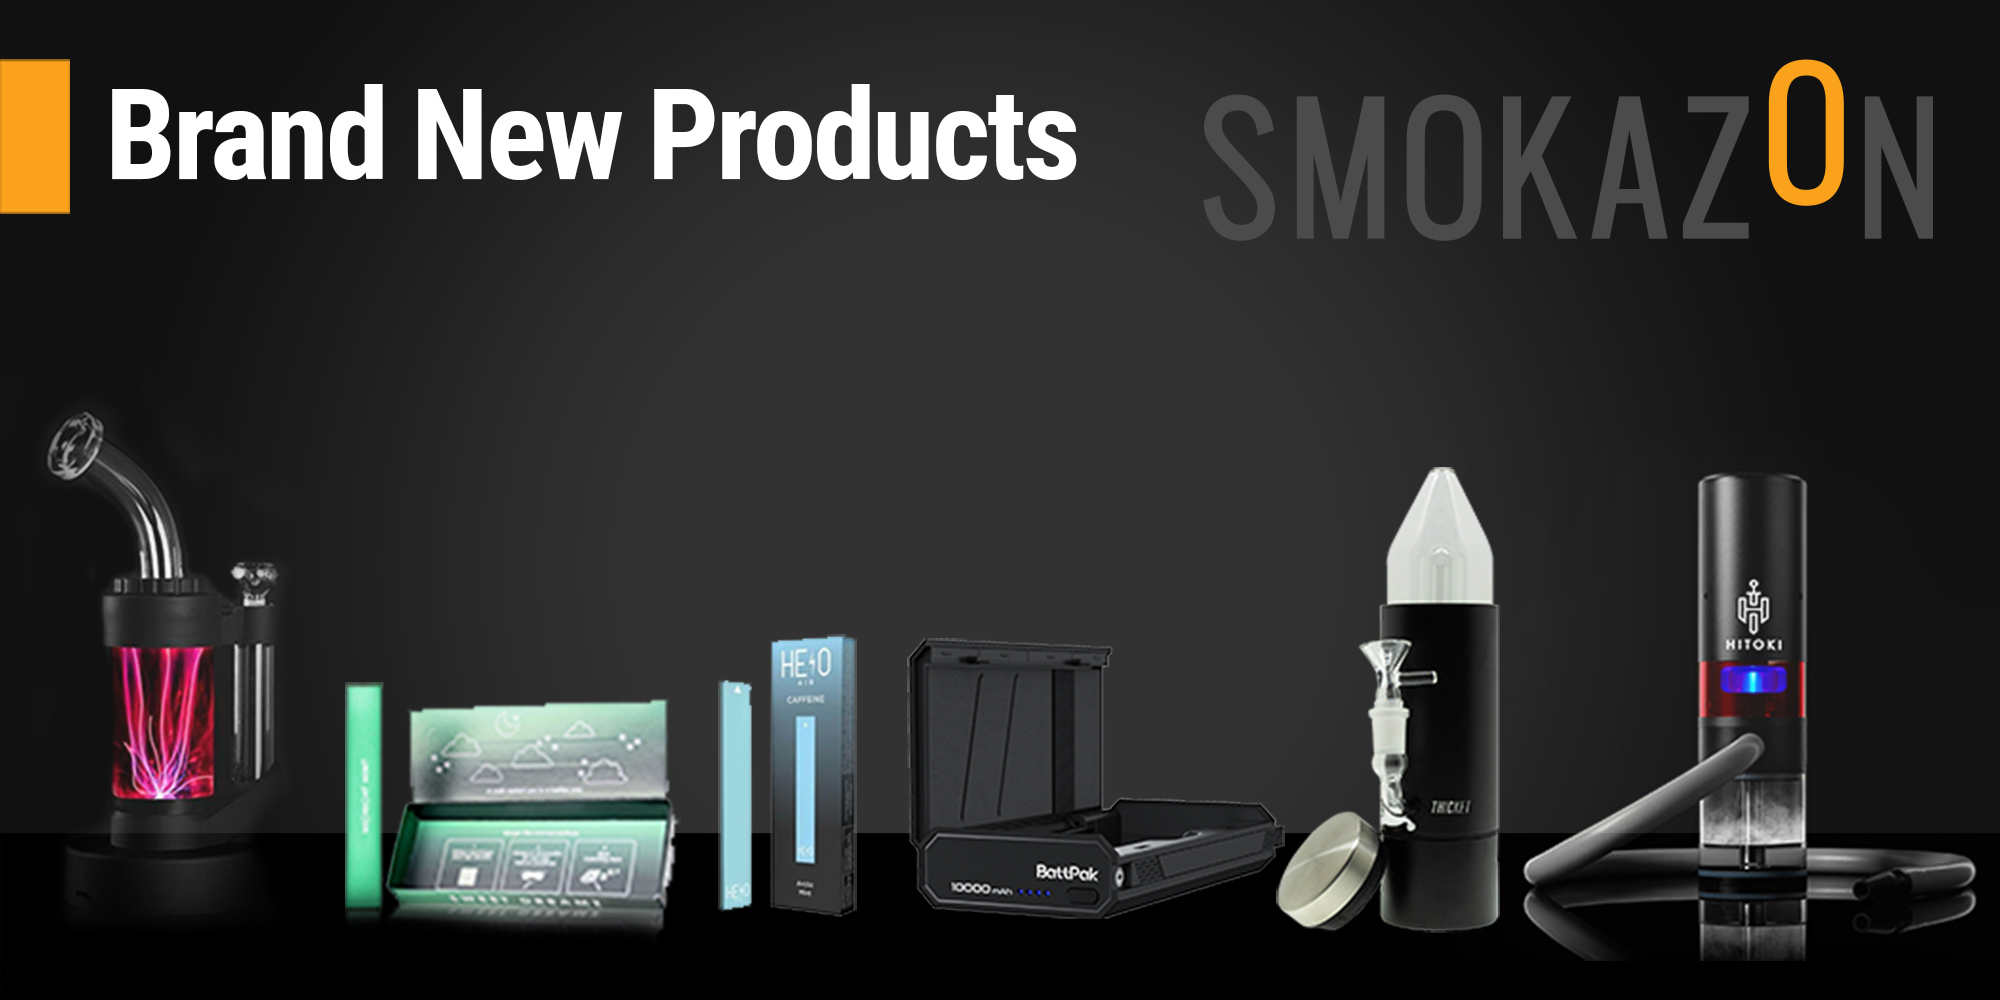 New Vaporizer Products